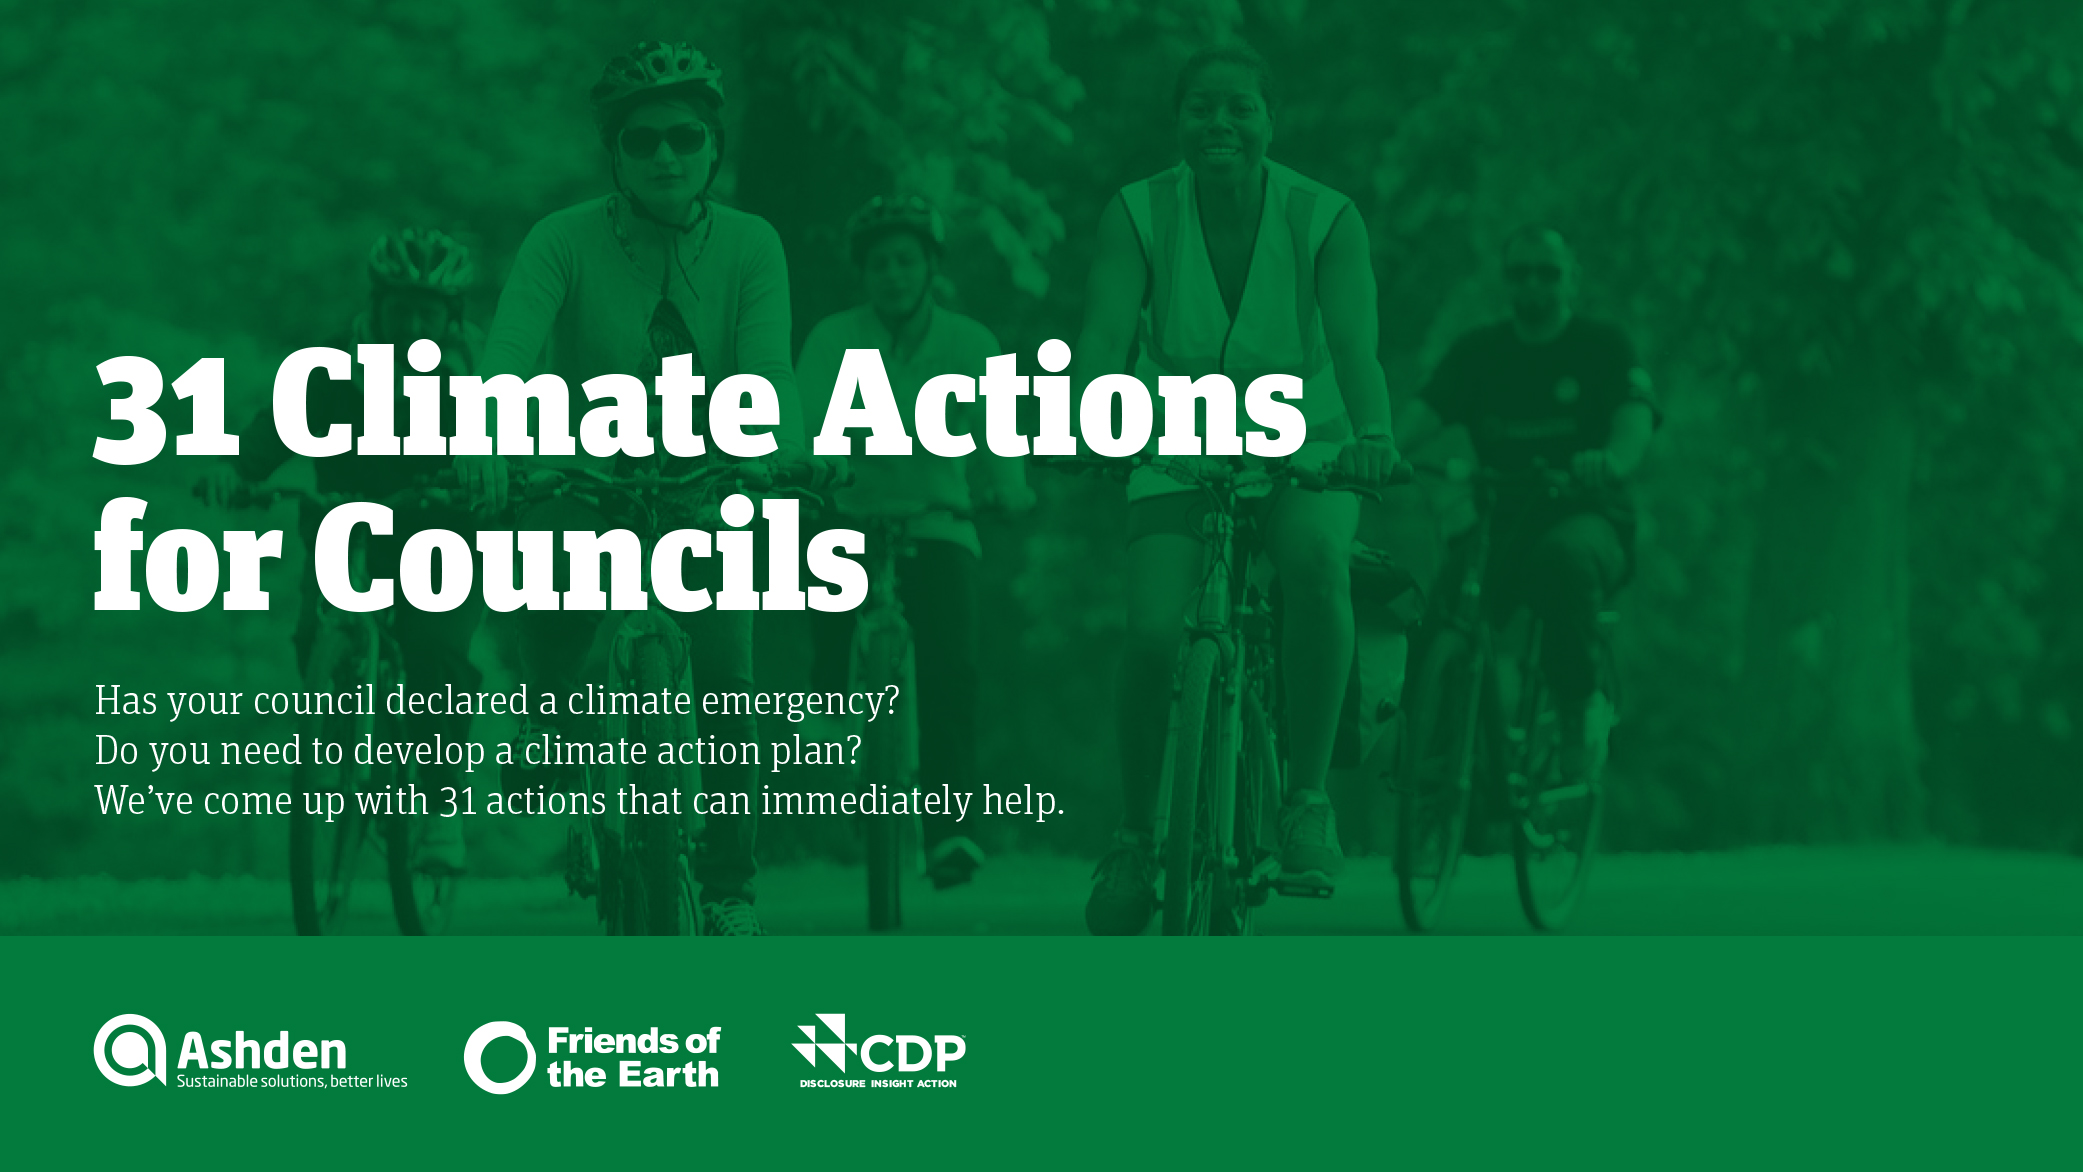 31 Climate Actions for Councils